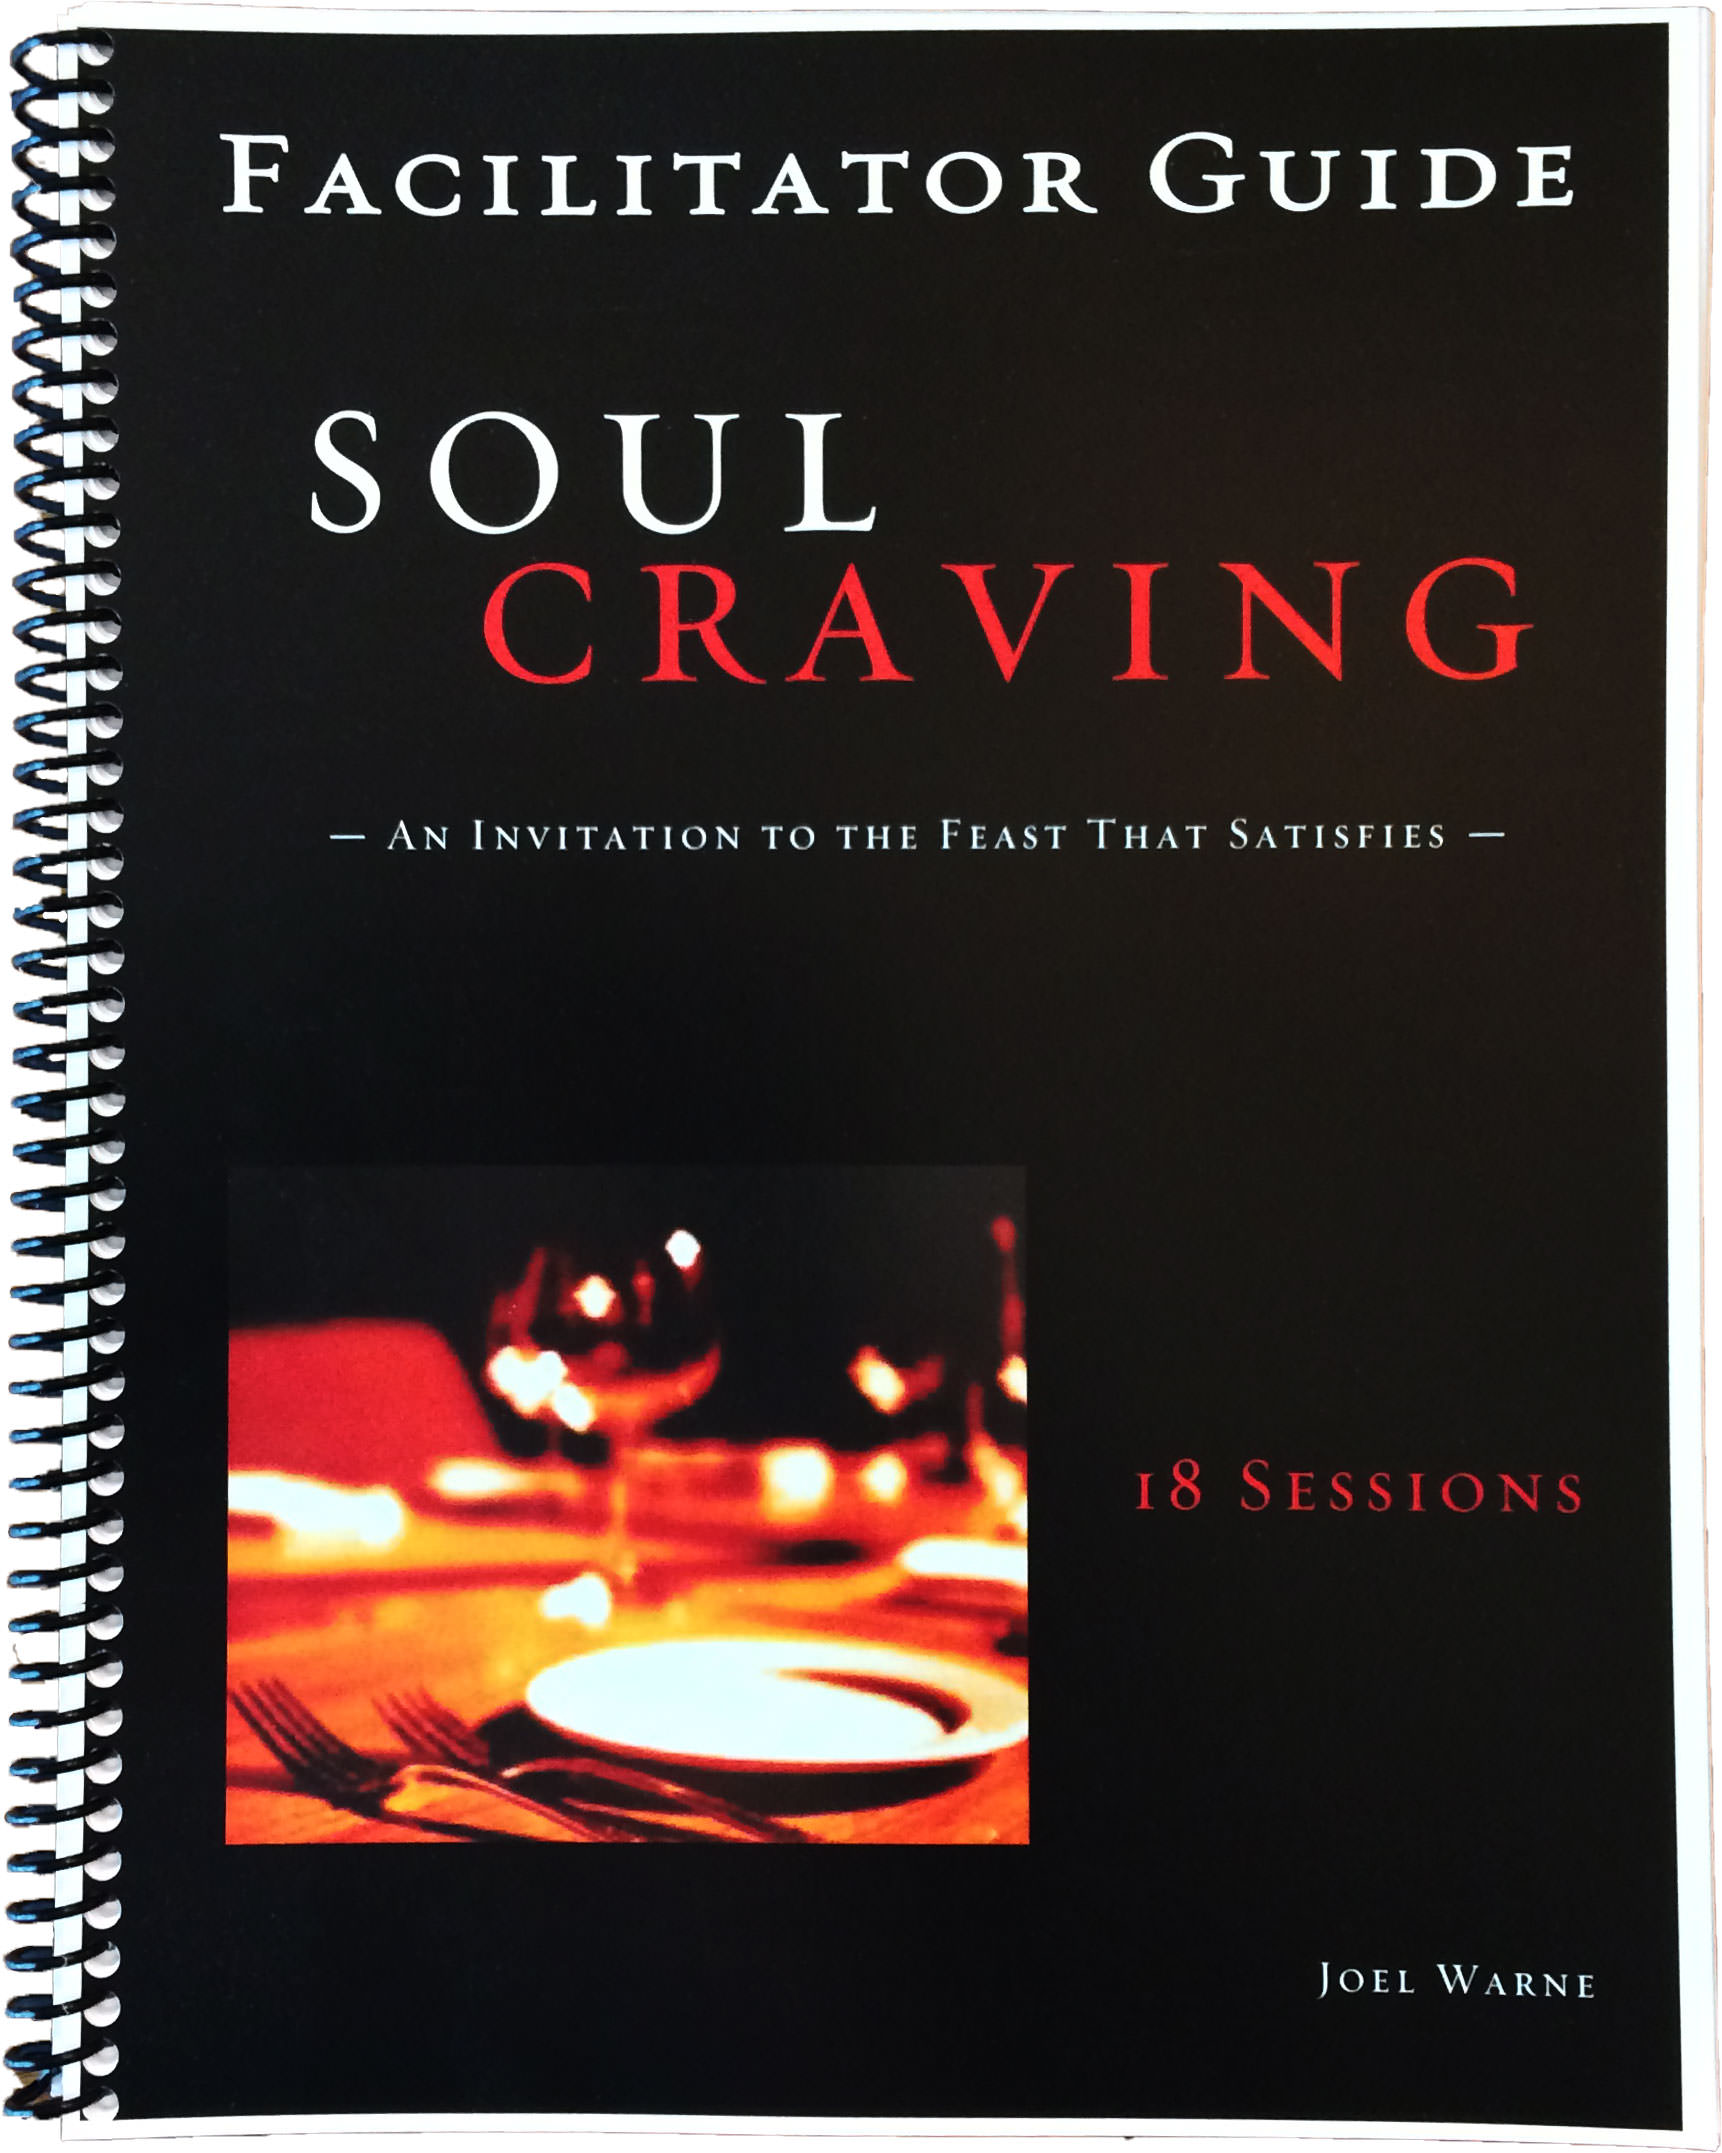 soul-craving-facilitator-guide